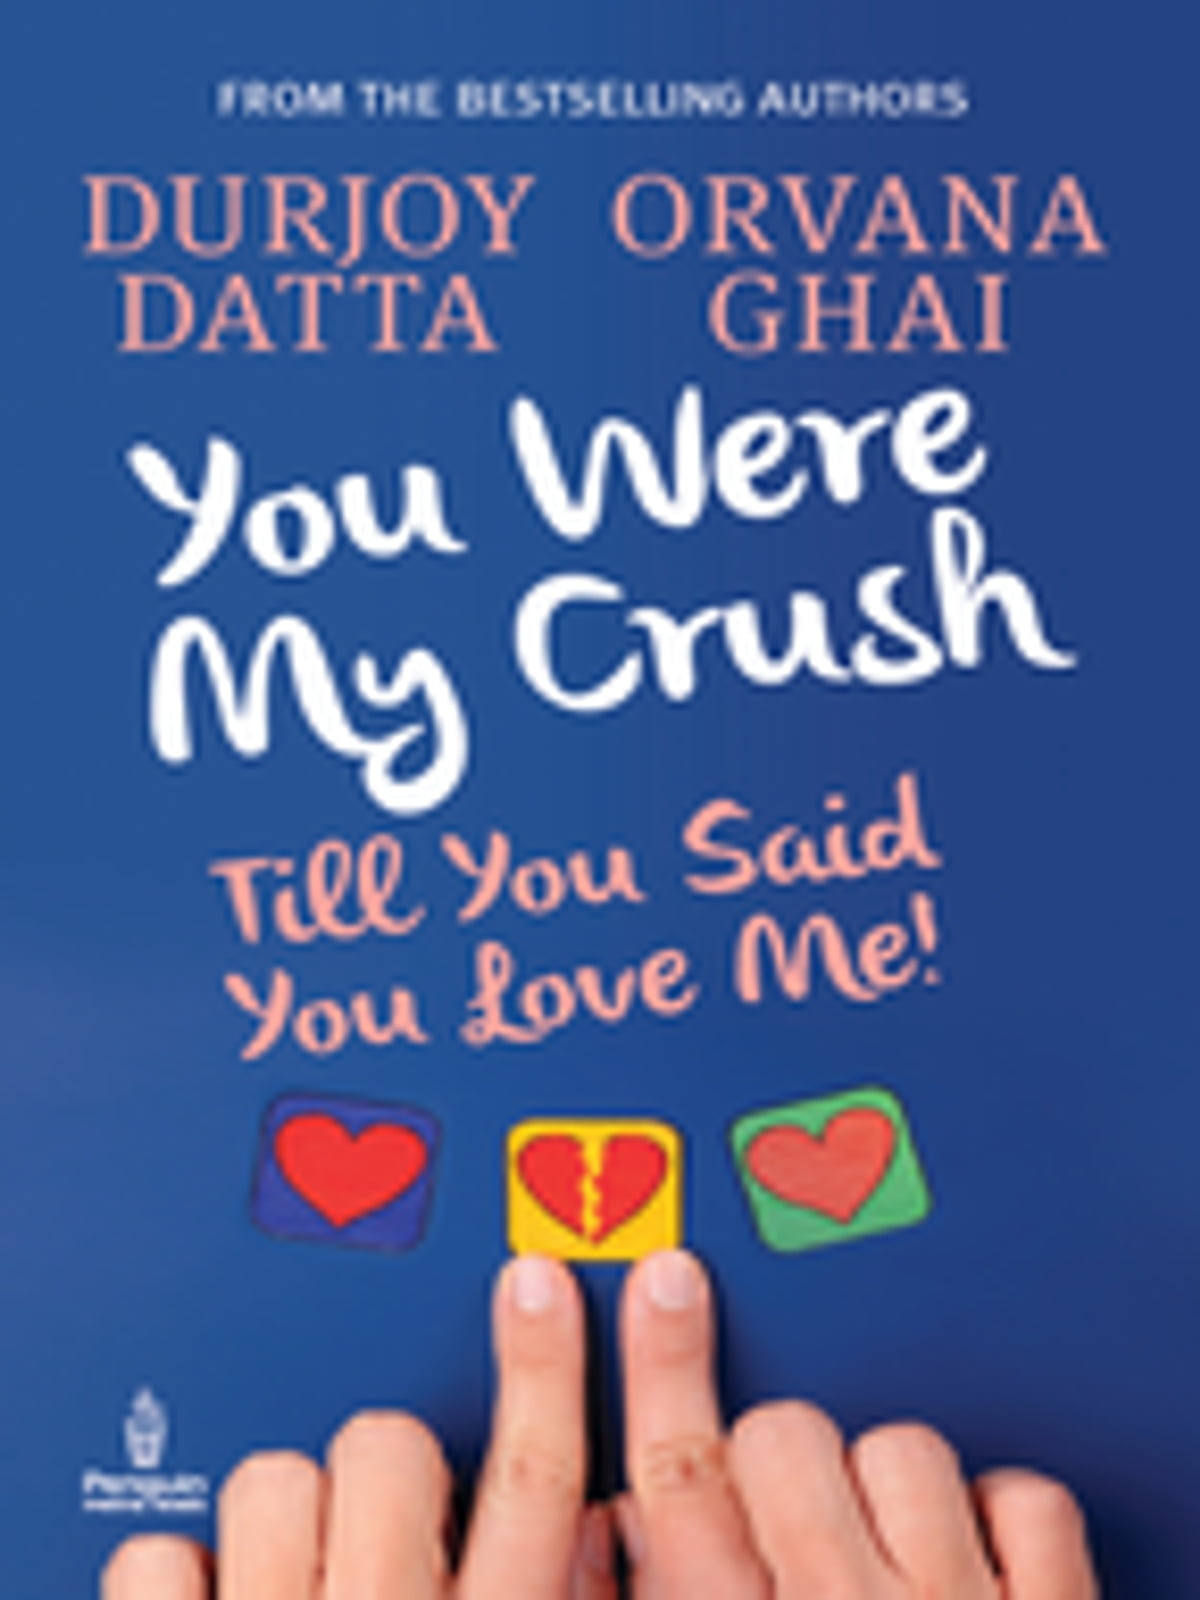 You Were My Crush  Till You Said You Love Me! Ebook By Durjoy Datta